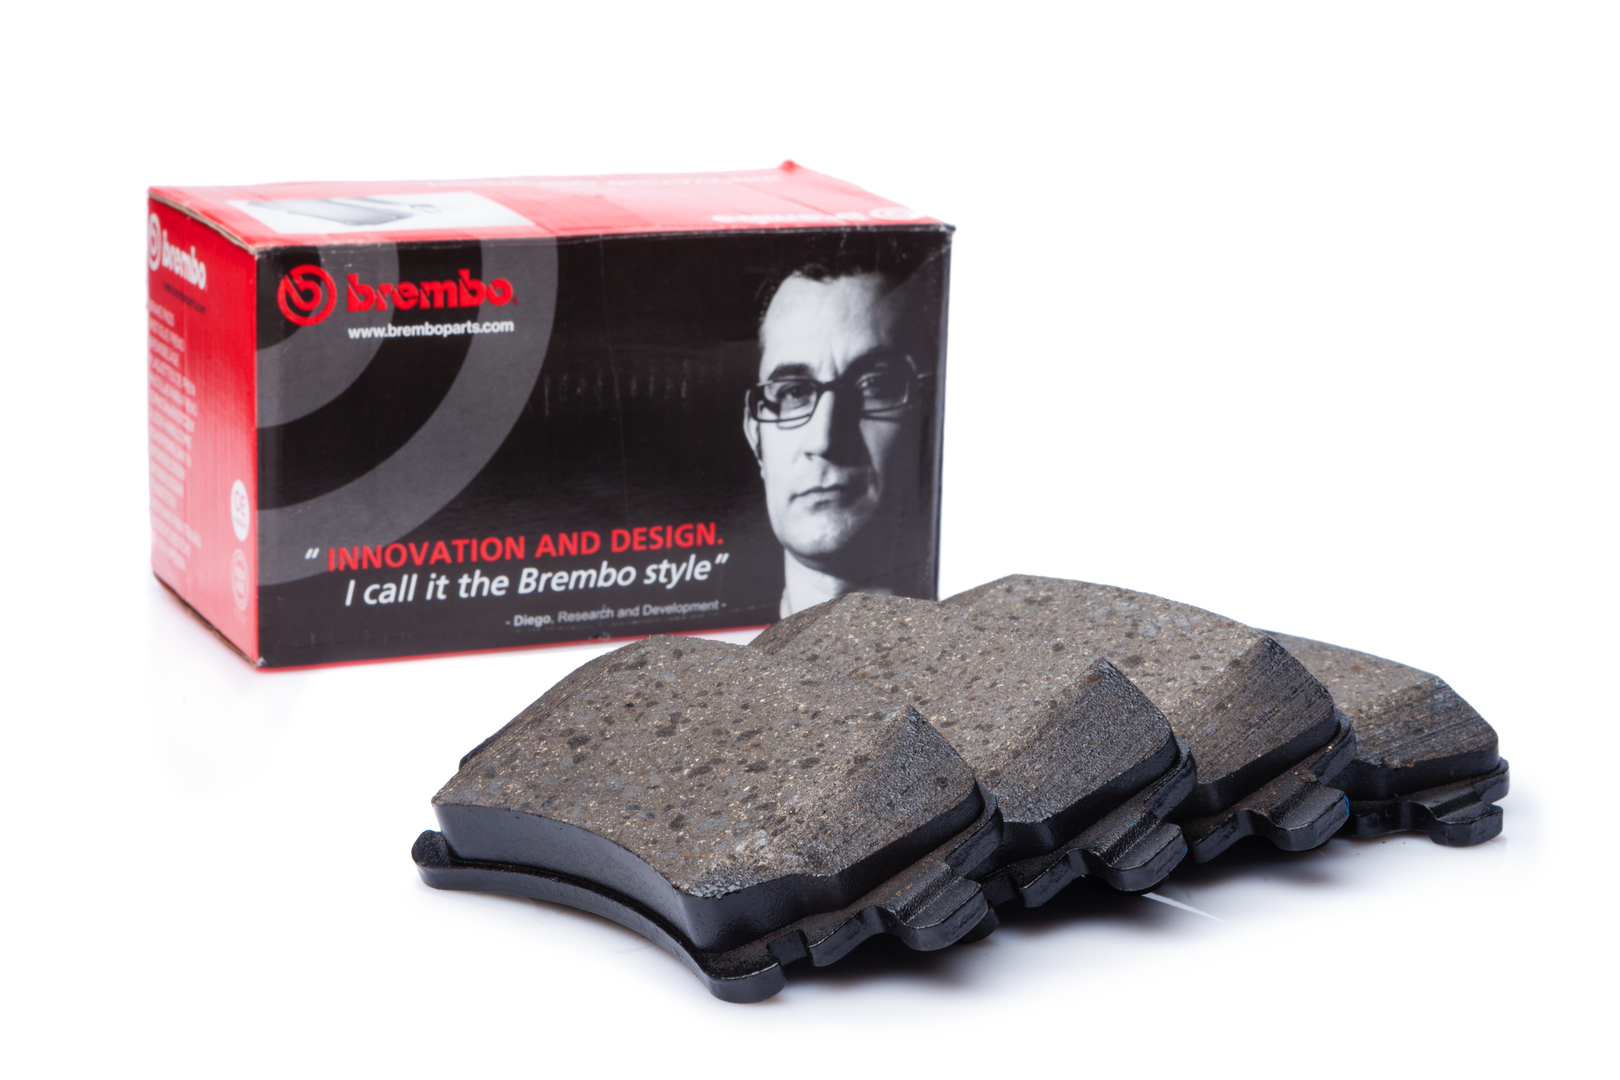 P 24 034 - Brake Pad Set, disc brake